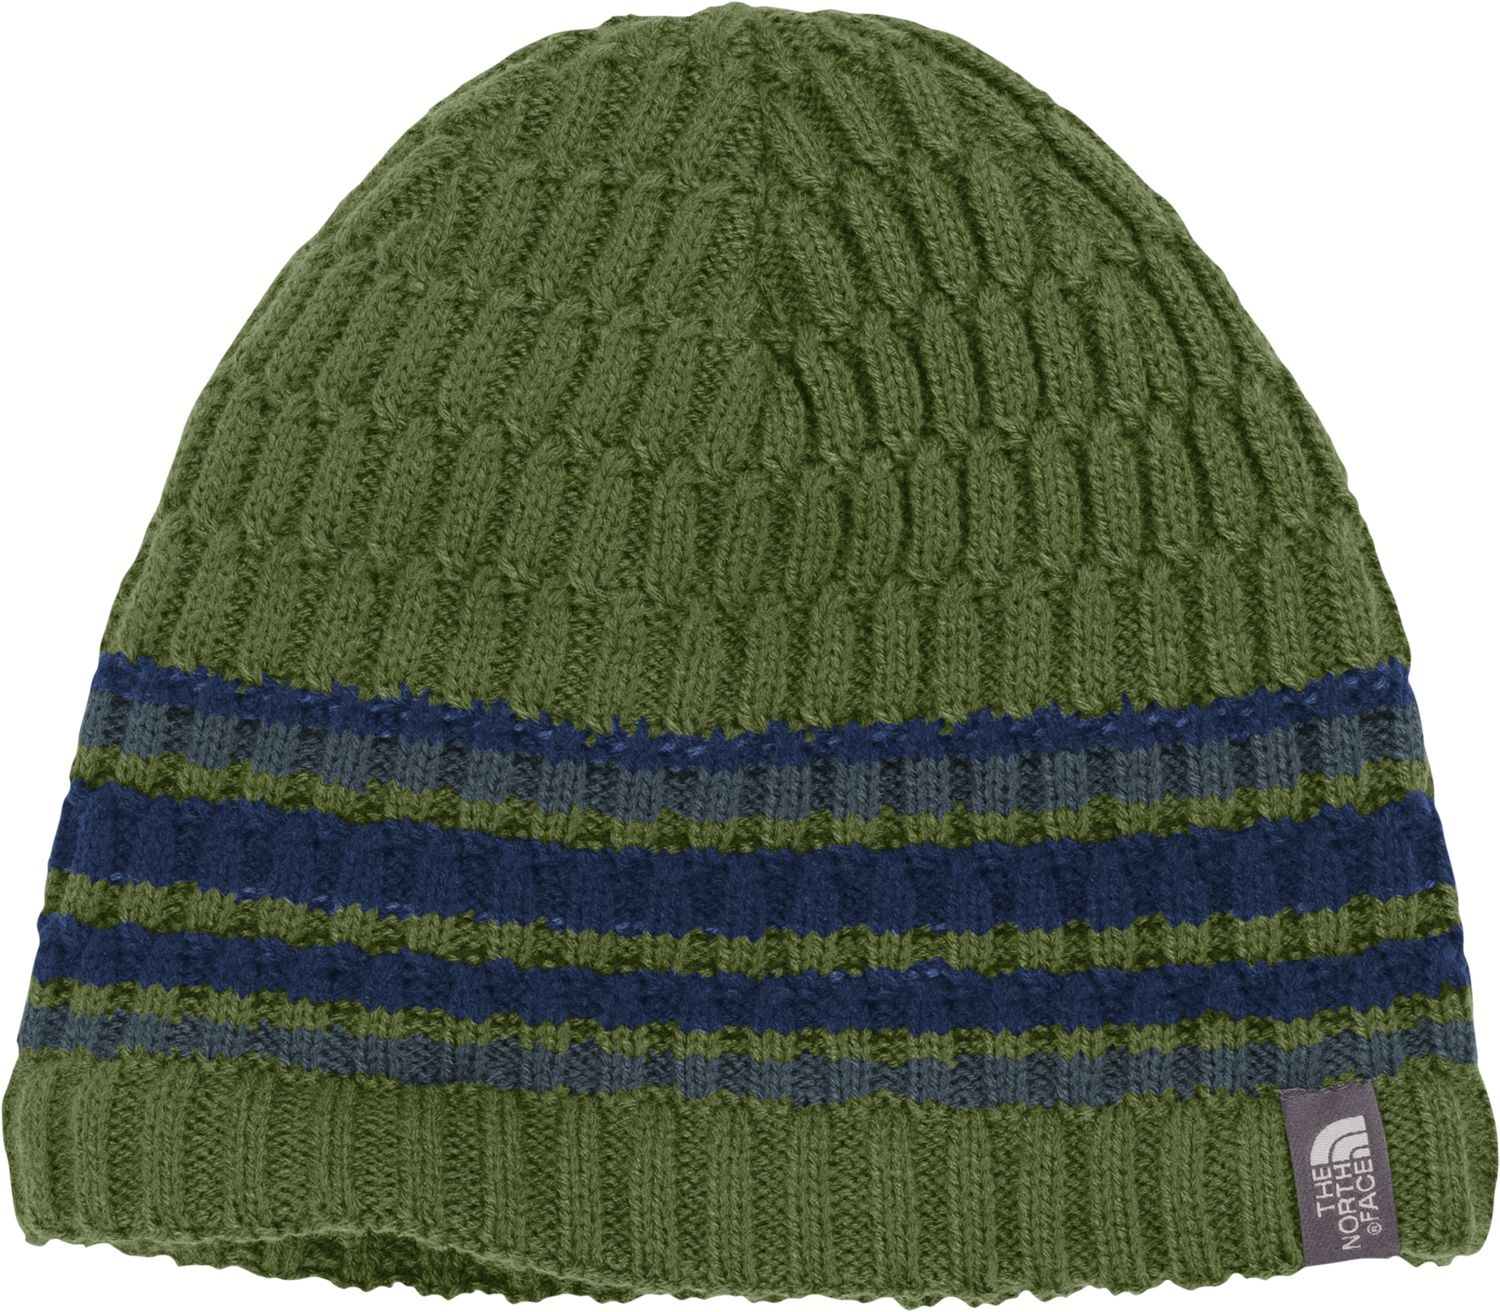 199a2a3b32bfb7 The North Face Men's Blues Beanie | DICK'S Sporting GoodsProposition ...